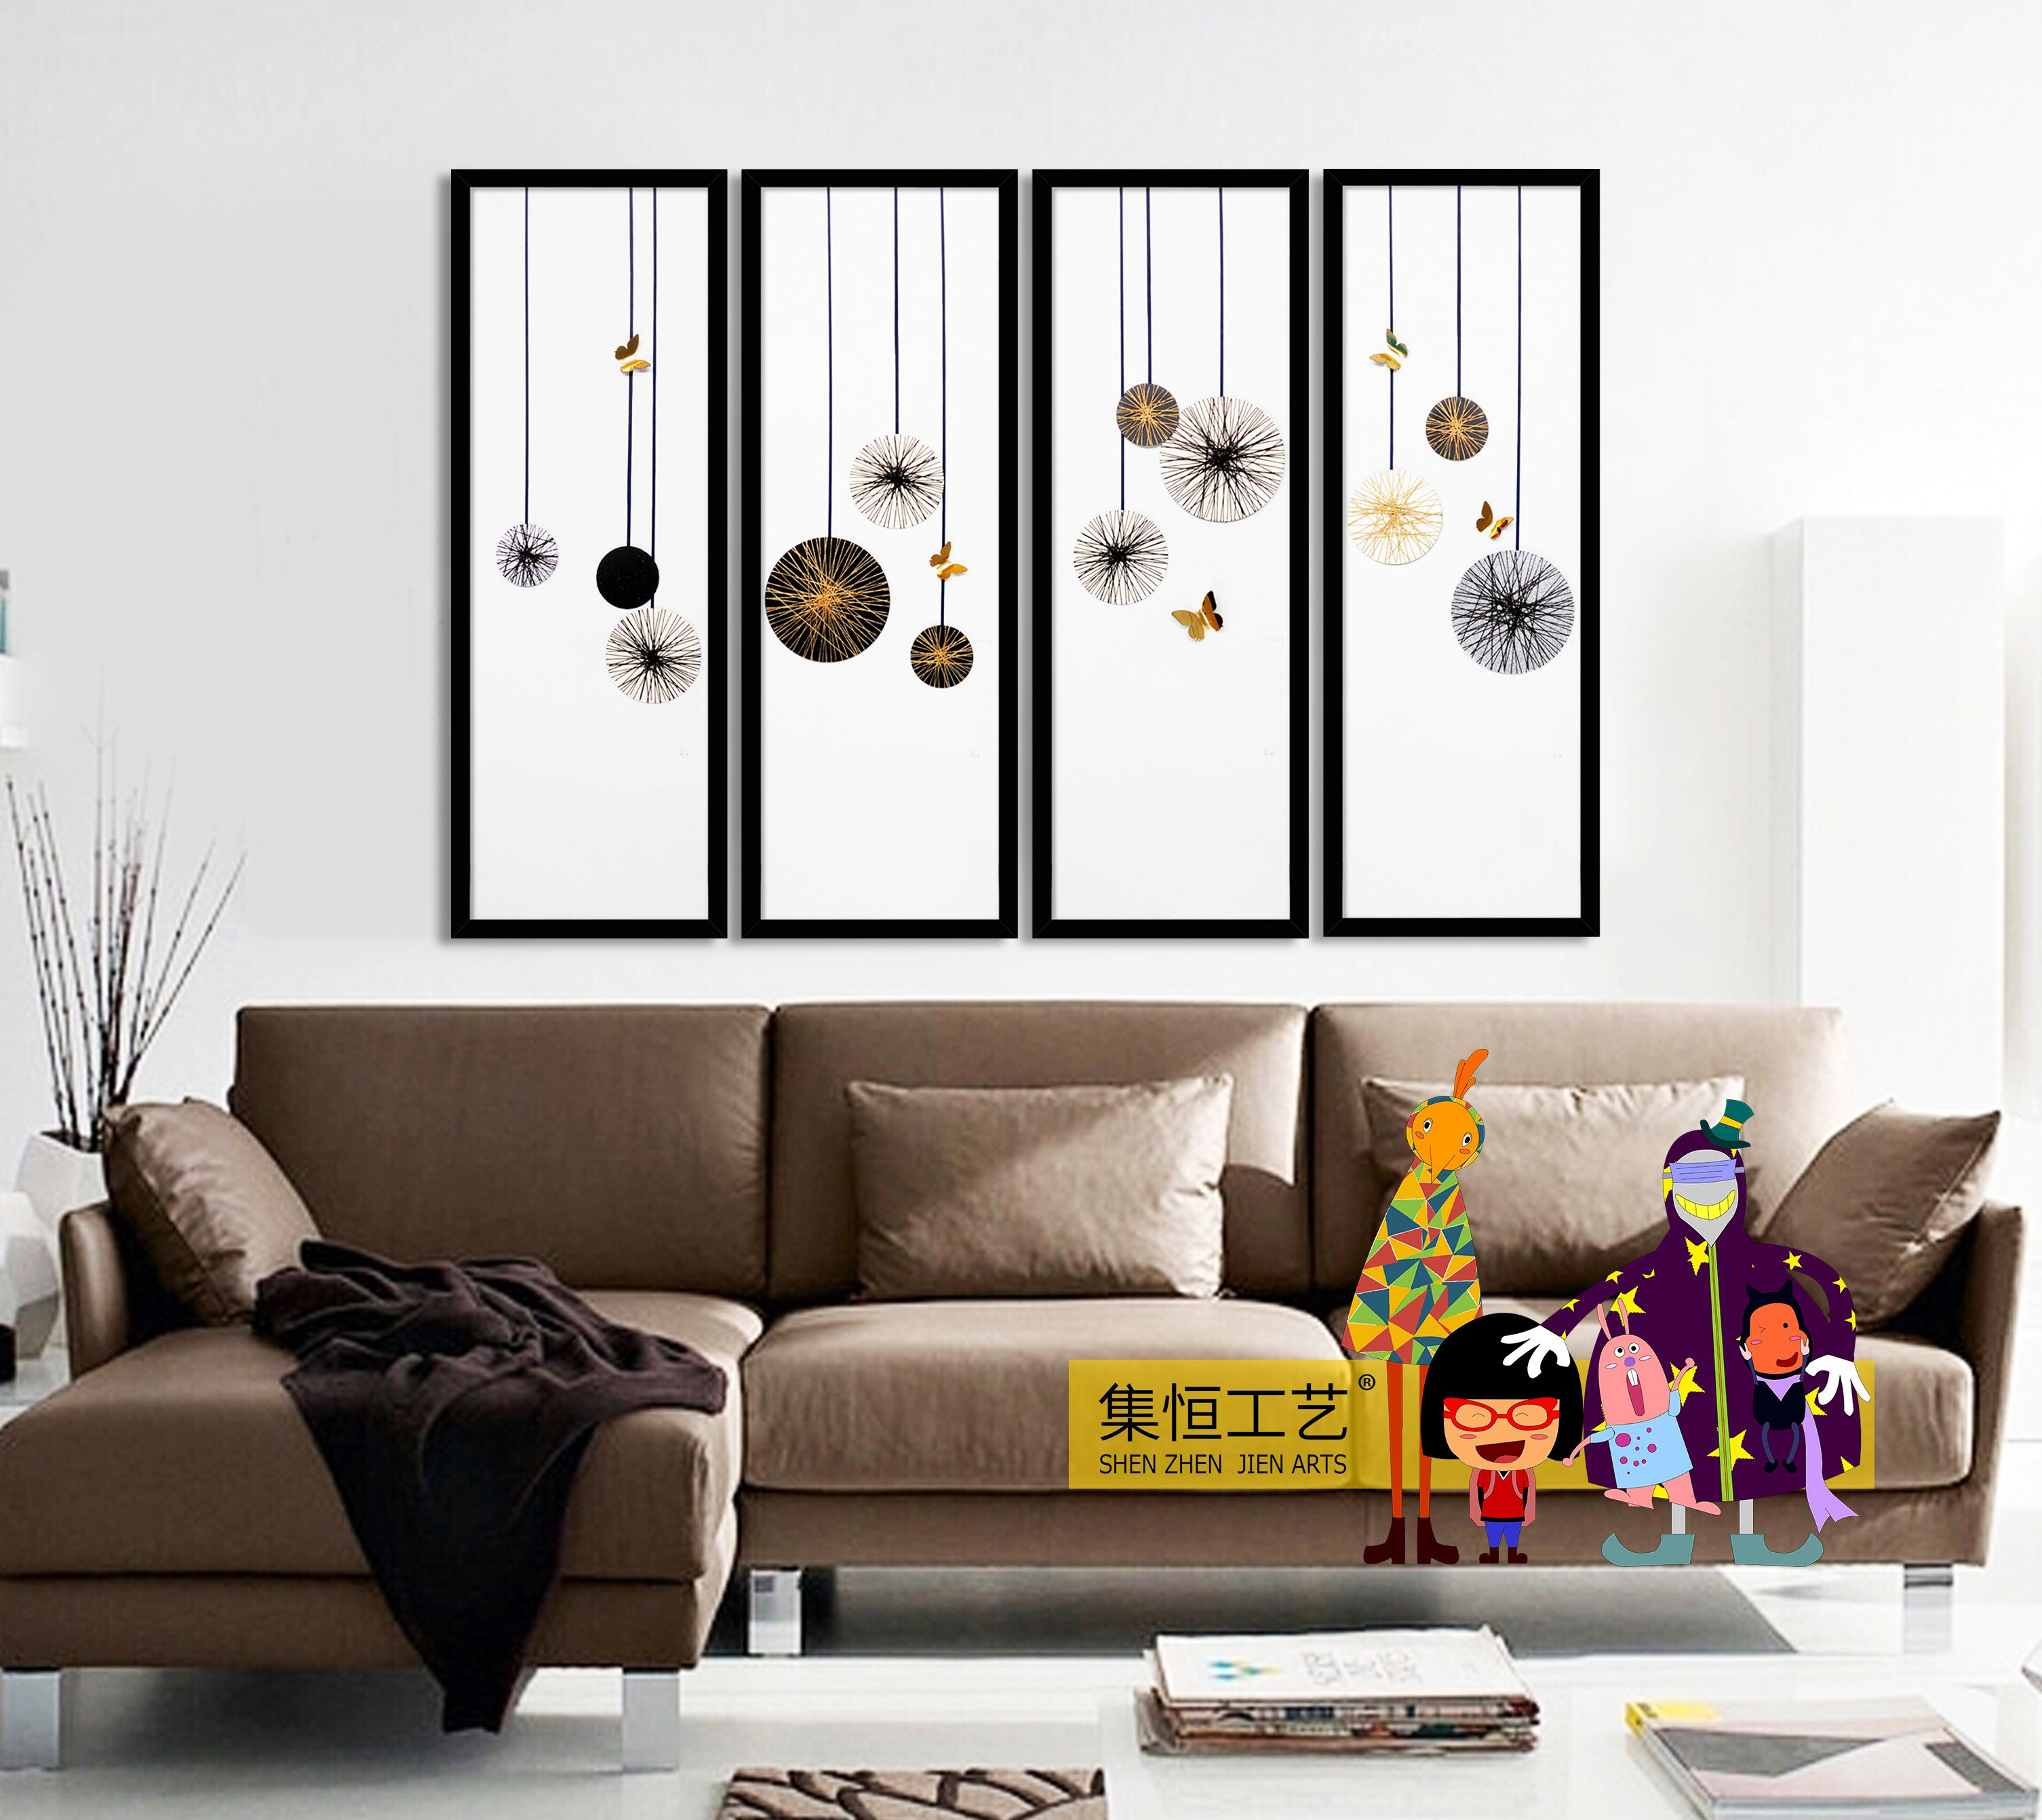 JIEN ARTS 2016 ORIGINAL DECORATIVE PAINTING 集恒工艺 . 装置画http://www.jhgy.cc 洪小姐:18129915597 Q:2880084655